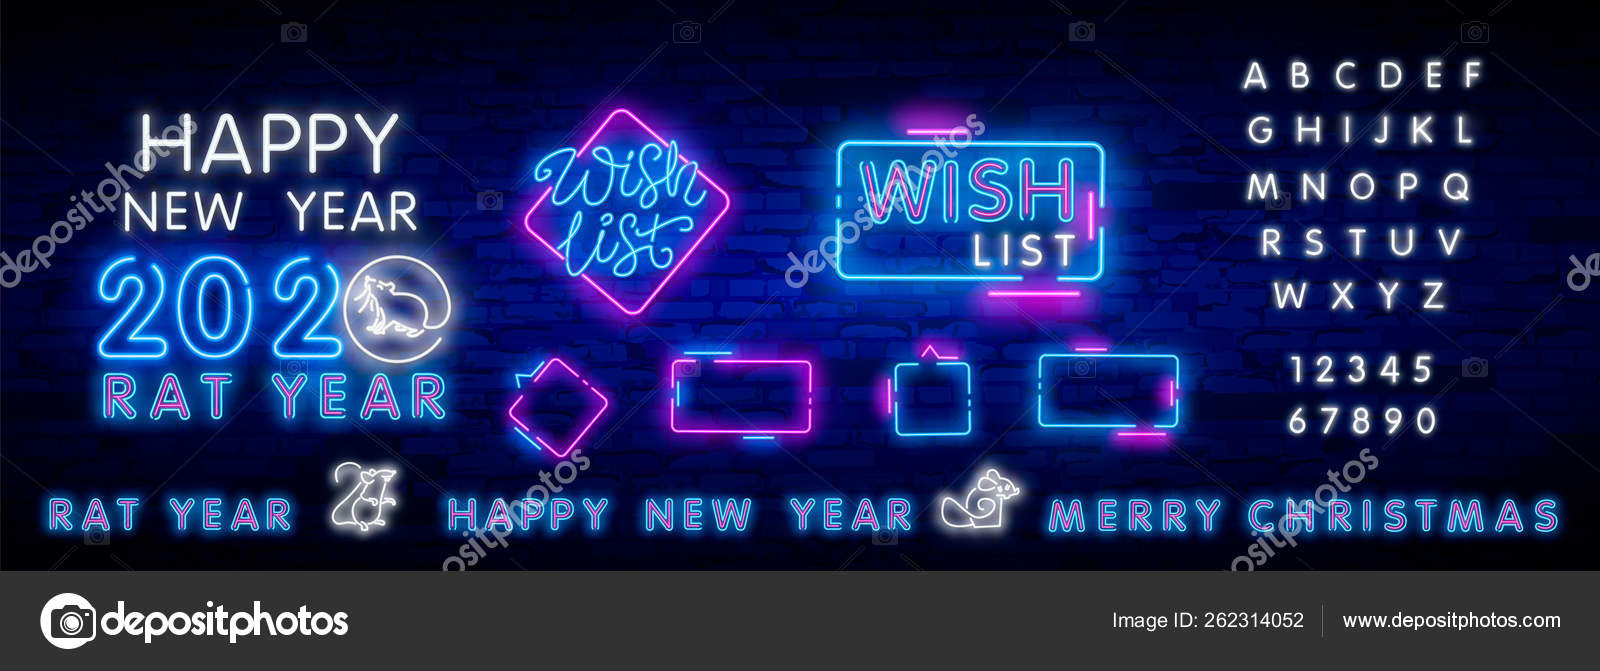 Christmas Wish List 2020.2020 Christmas Wish List Template Neon Elements Neon Wish